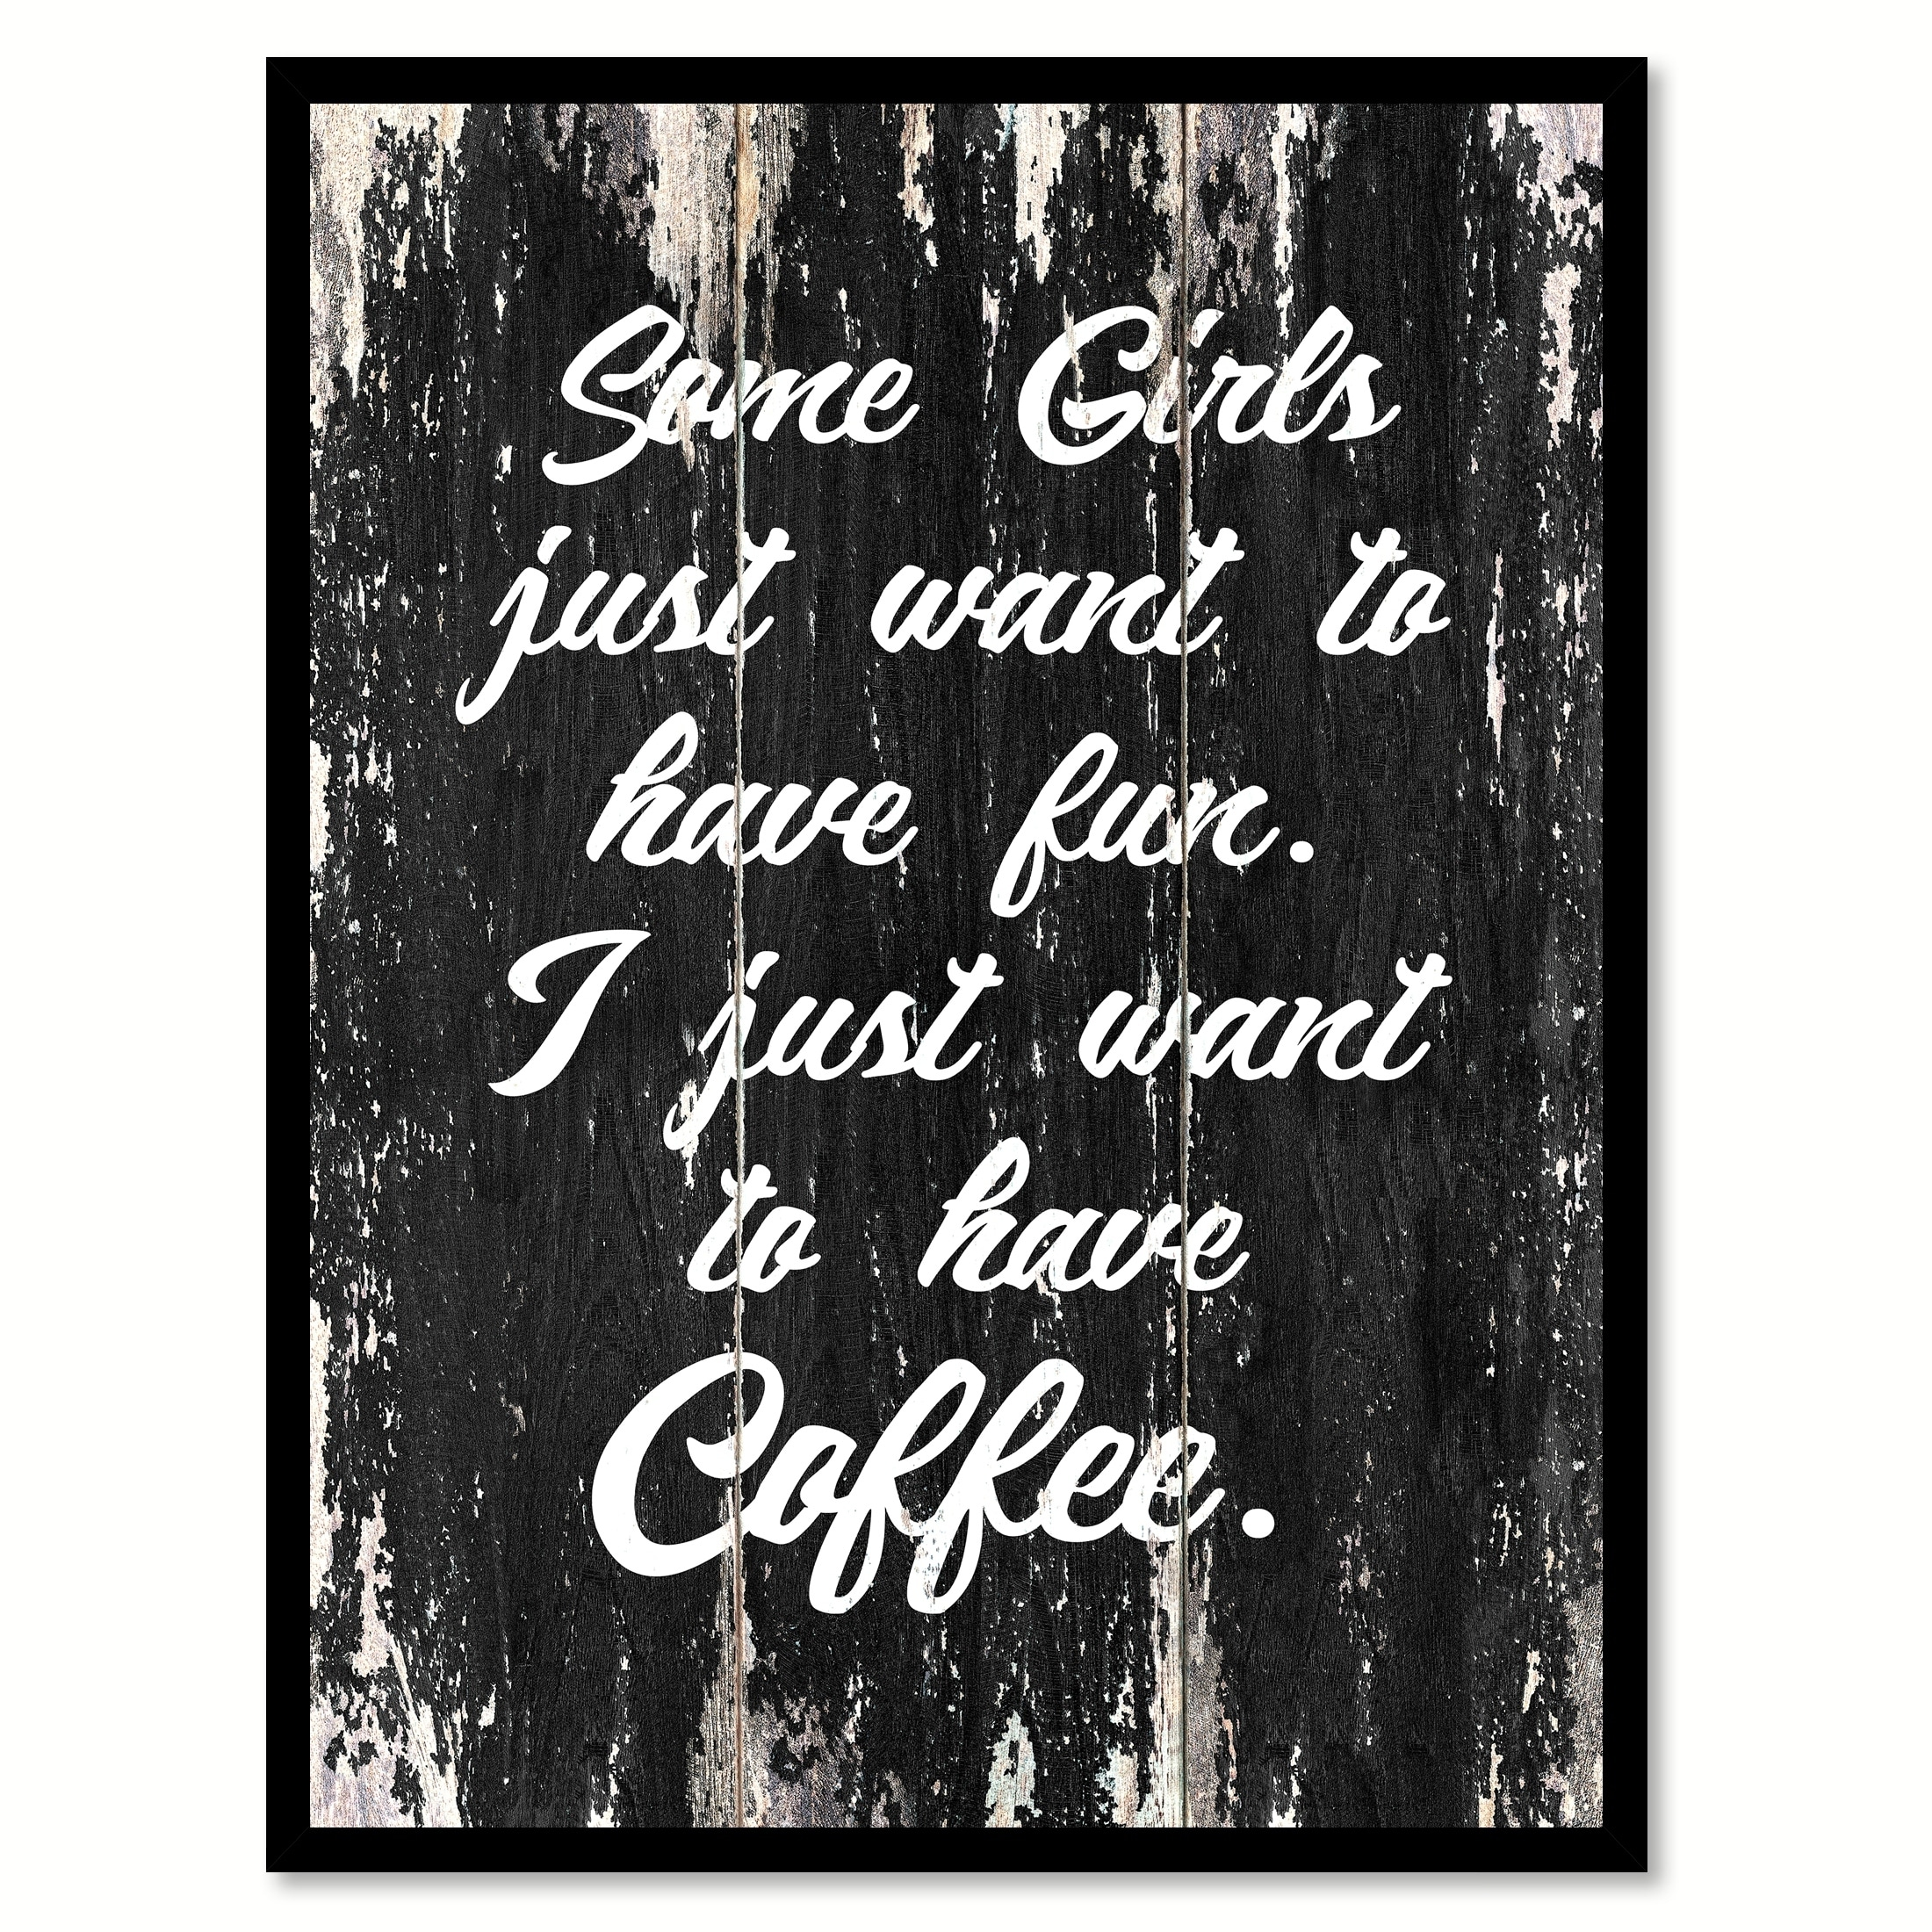 Some girls just want to have fun i just want to have coffee saying canvas print picture frame home decor wall art free shipping on orders over 45